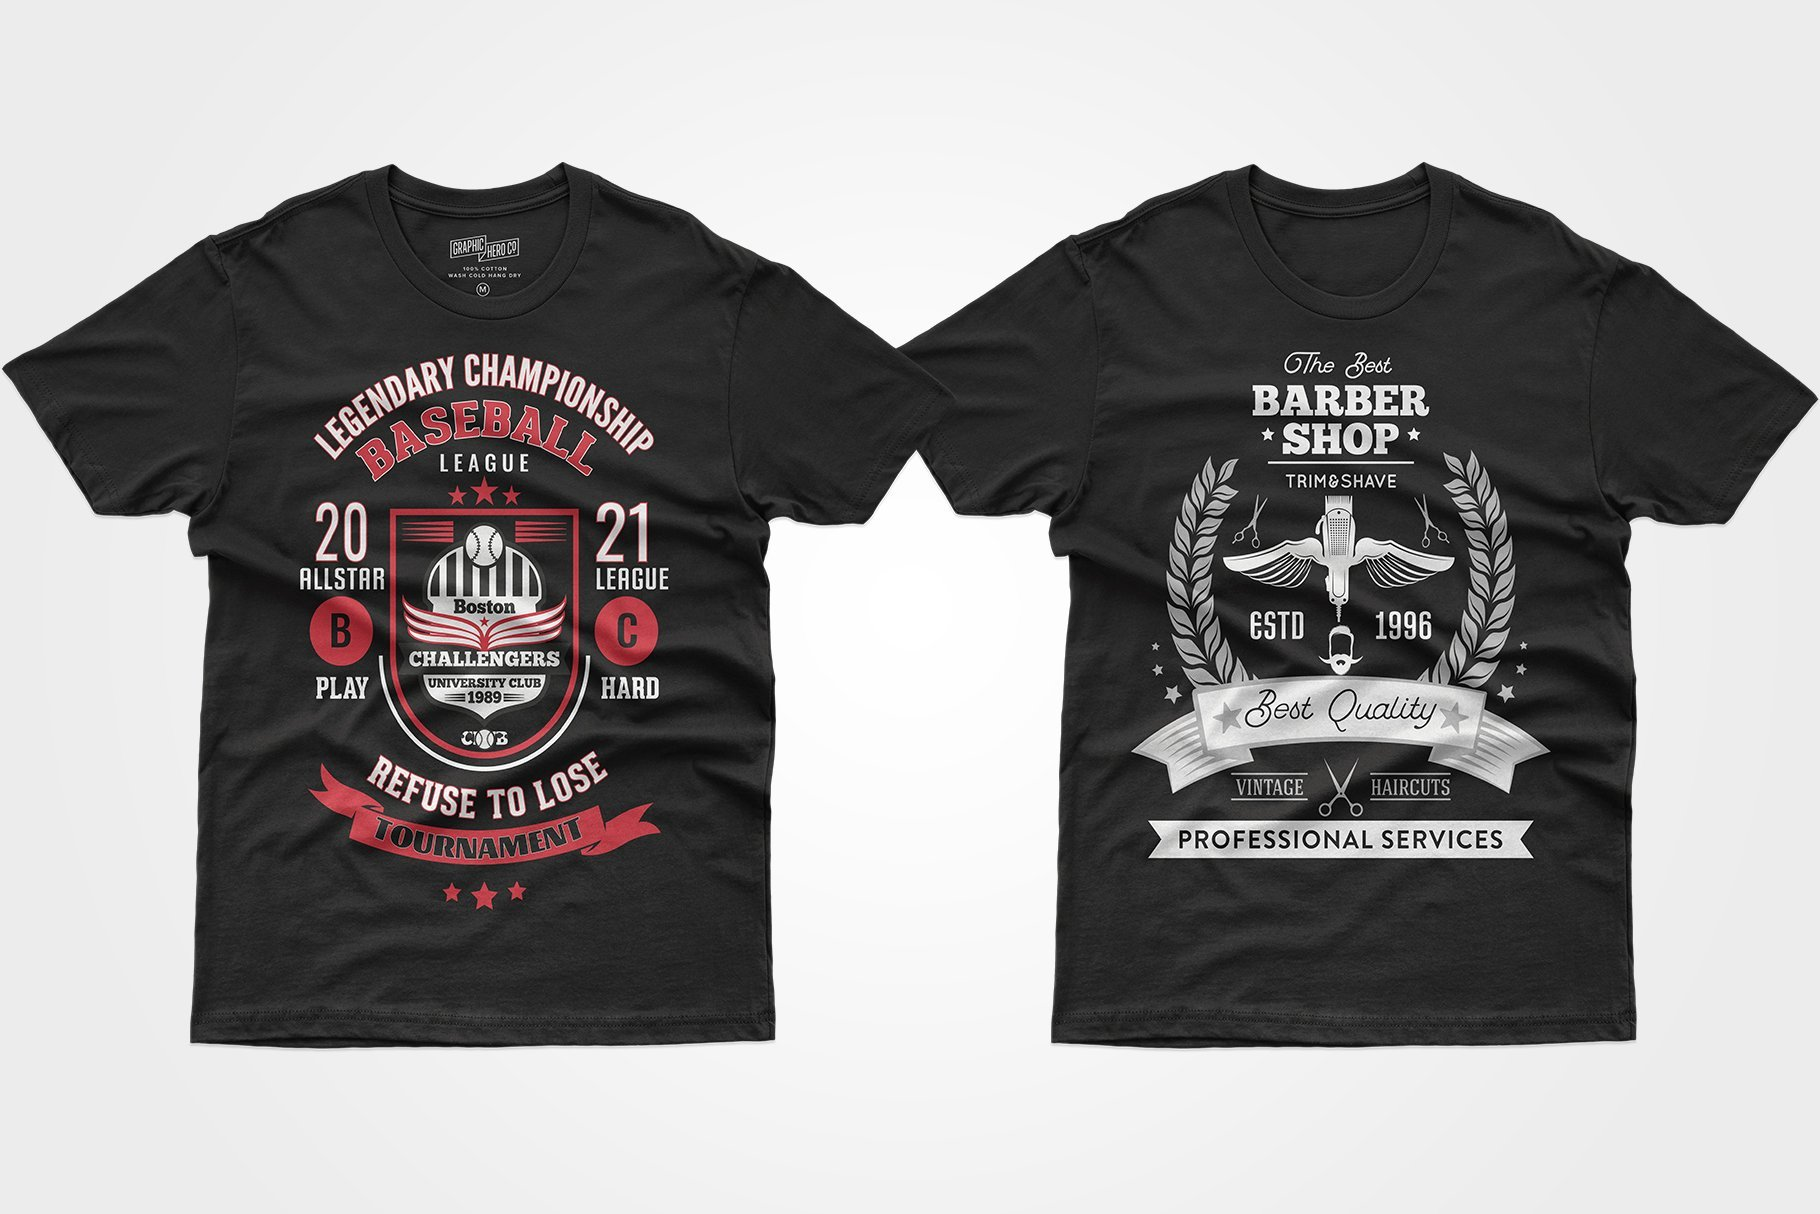 Two black T-shirts - one with a colored poster about the baseball championship, the other b / w with a barbershop advertisement.